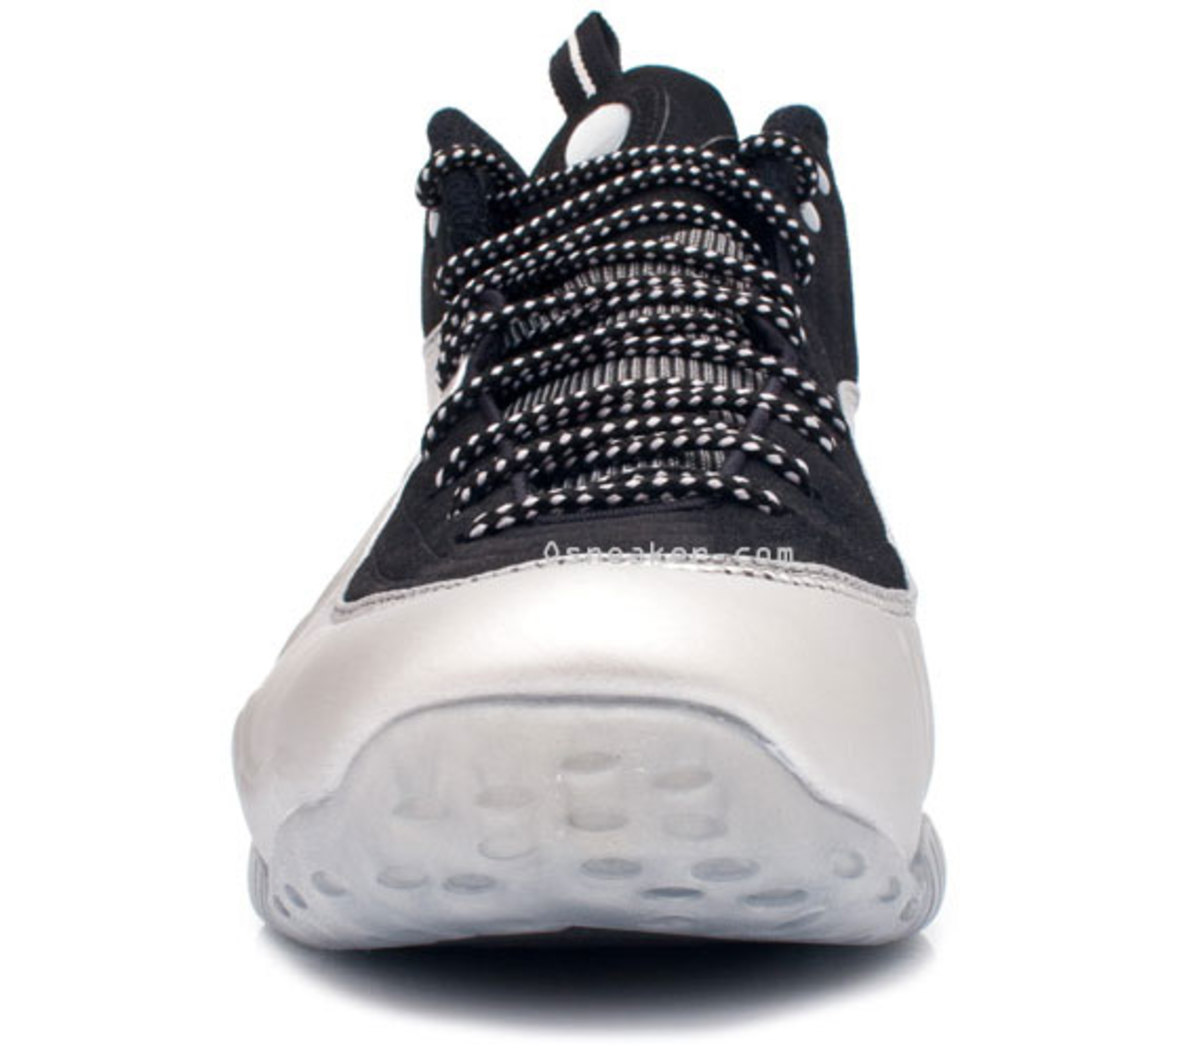 nike-1-2-cent-silver-black-5